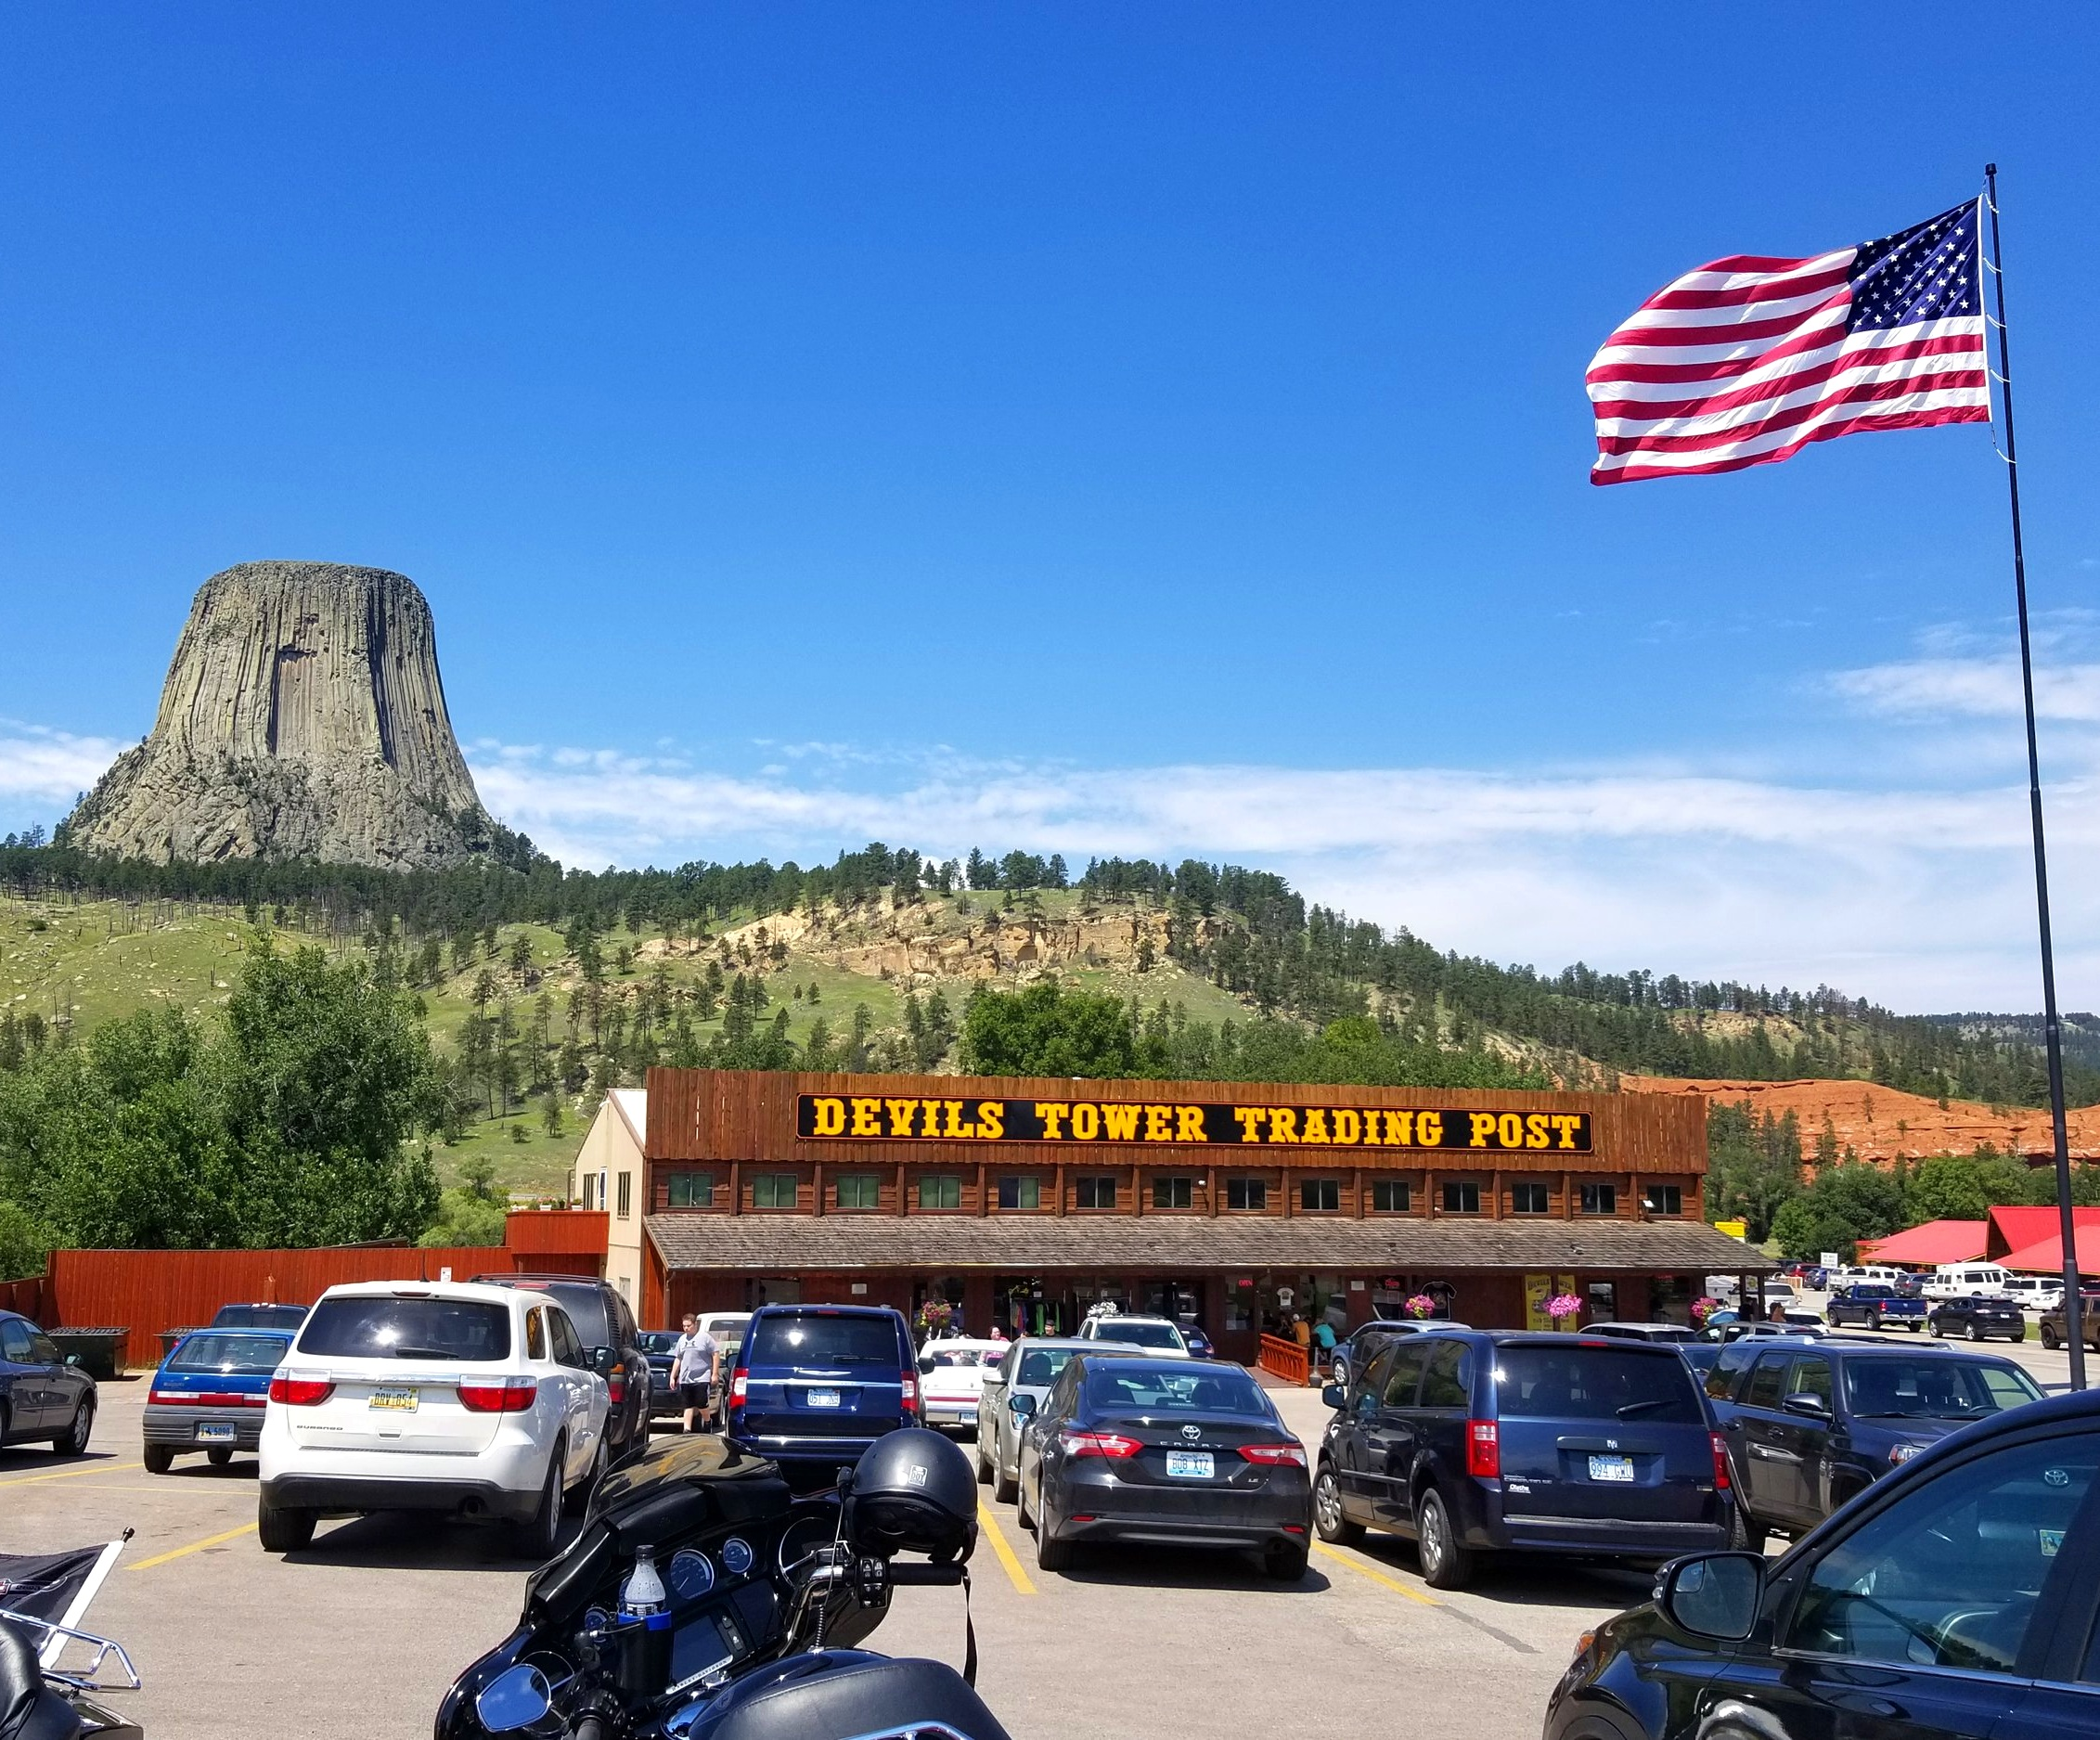 DEVILS TOWER - Take the scenic route from Wickiup to Devil's Tower. One of our favorite rides.